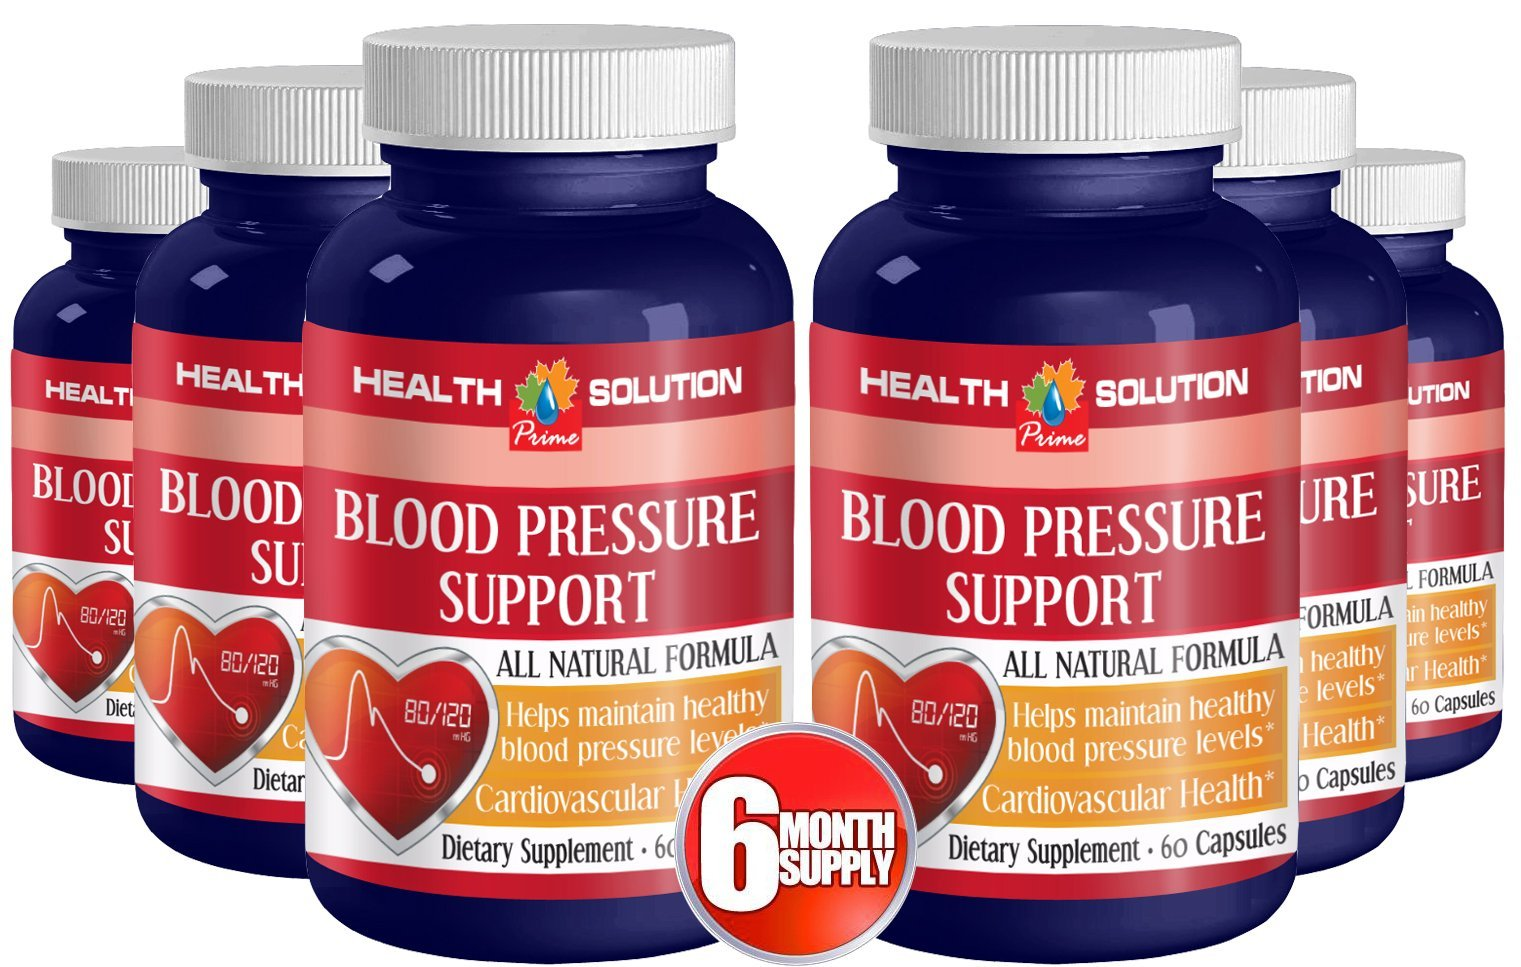 Vitamin b 12 - BLOOD PRESSURE SUPPORT - antioxidant support (6 bottles)